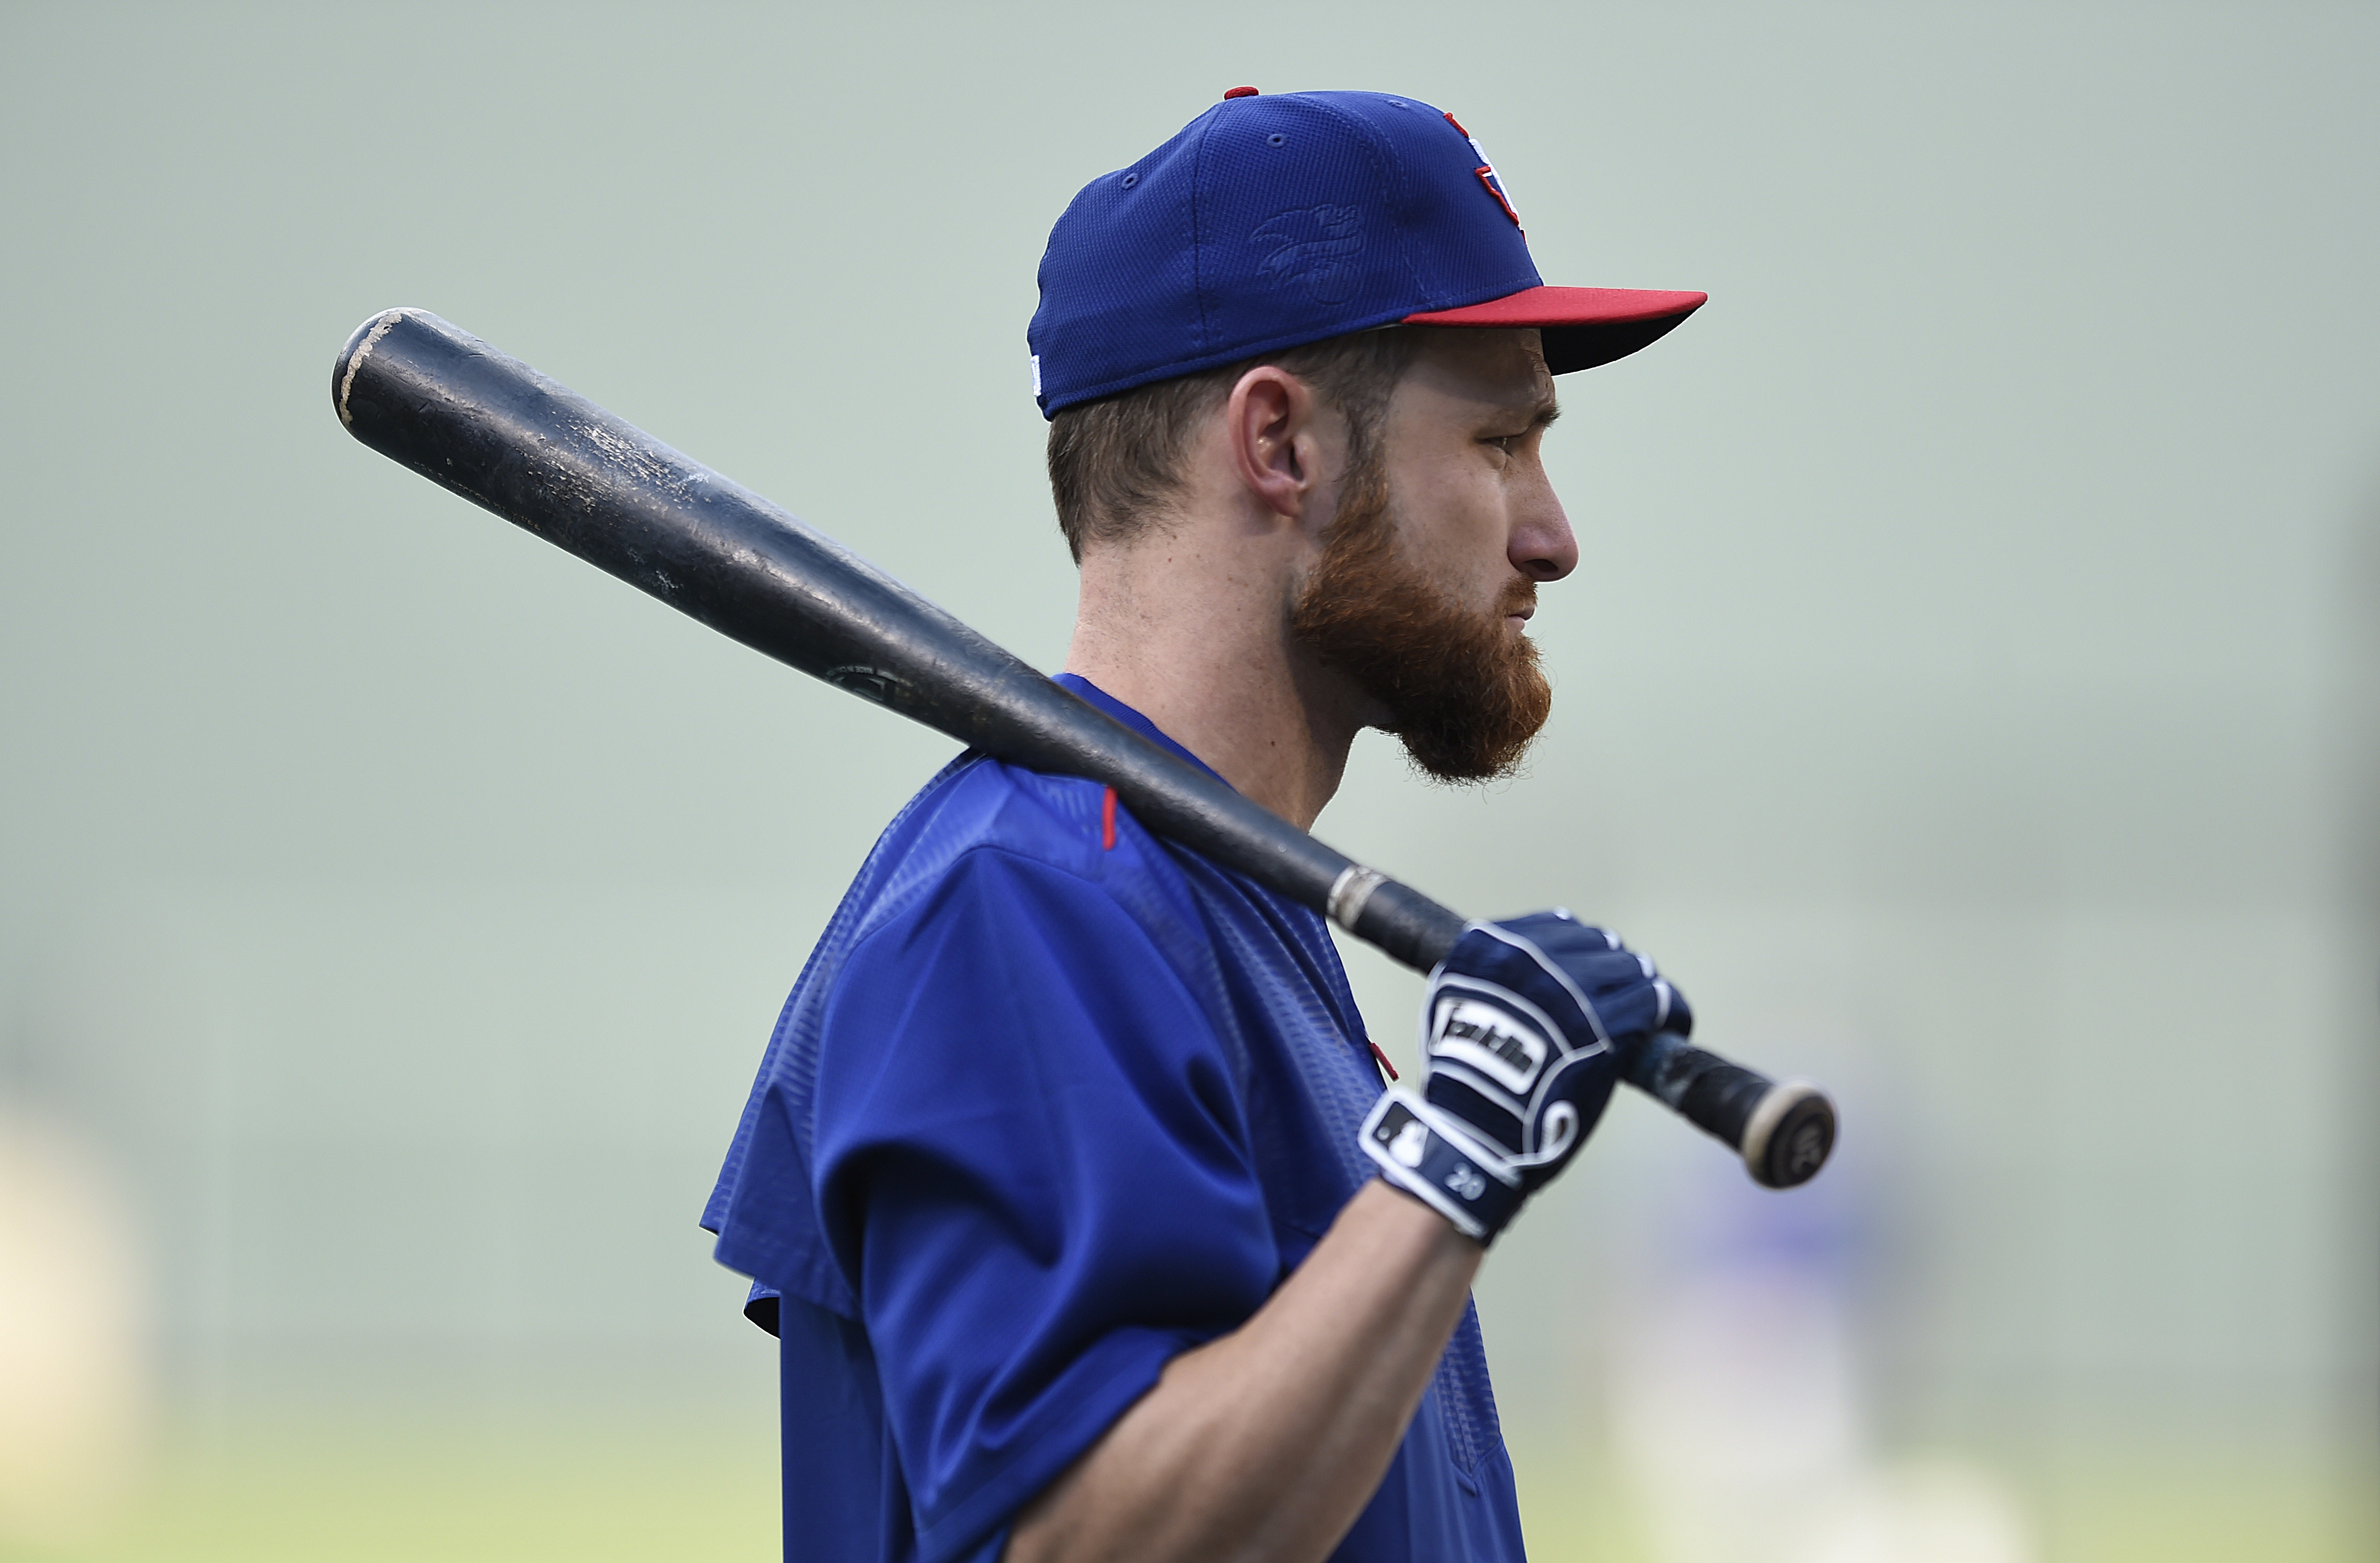 Texas Rangers' Jonathan Lucroy awaits his turn during batting practice before a baseball game between the Baltimore Orioles and the Texas Rangers in Baltimore. Tuesday, Aug. 2, 2016. (AP Photo/Gail Burton)